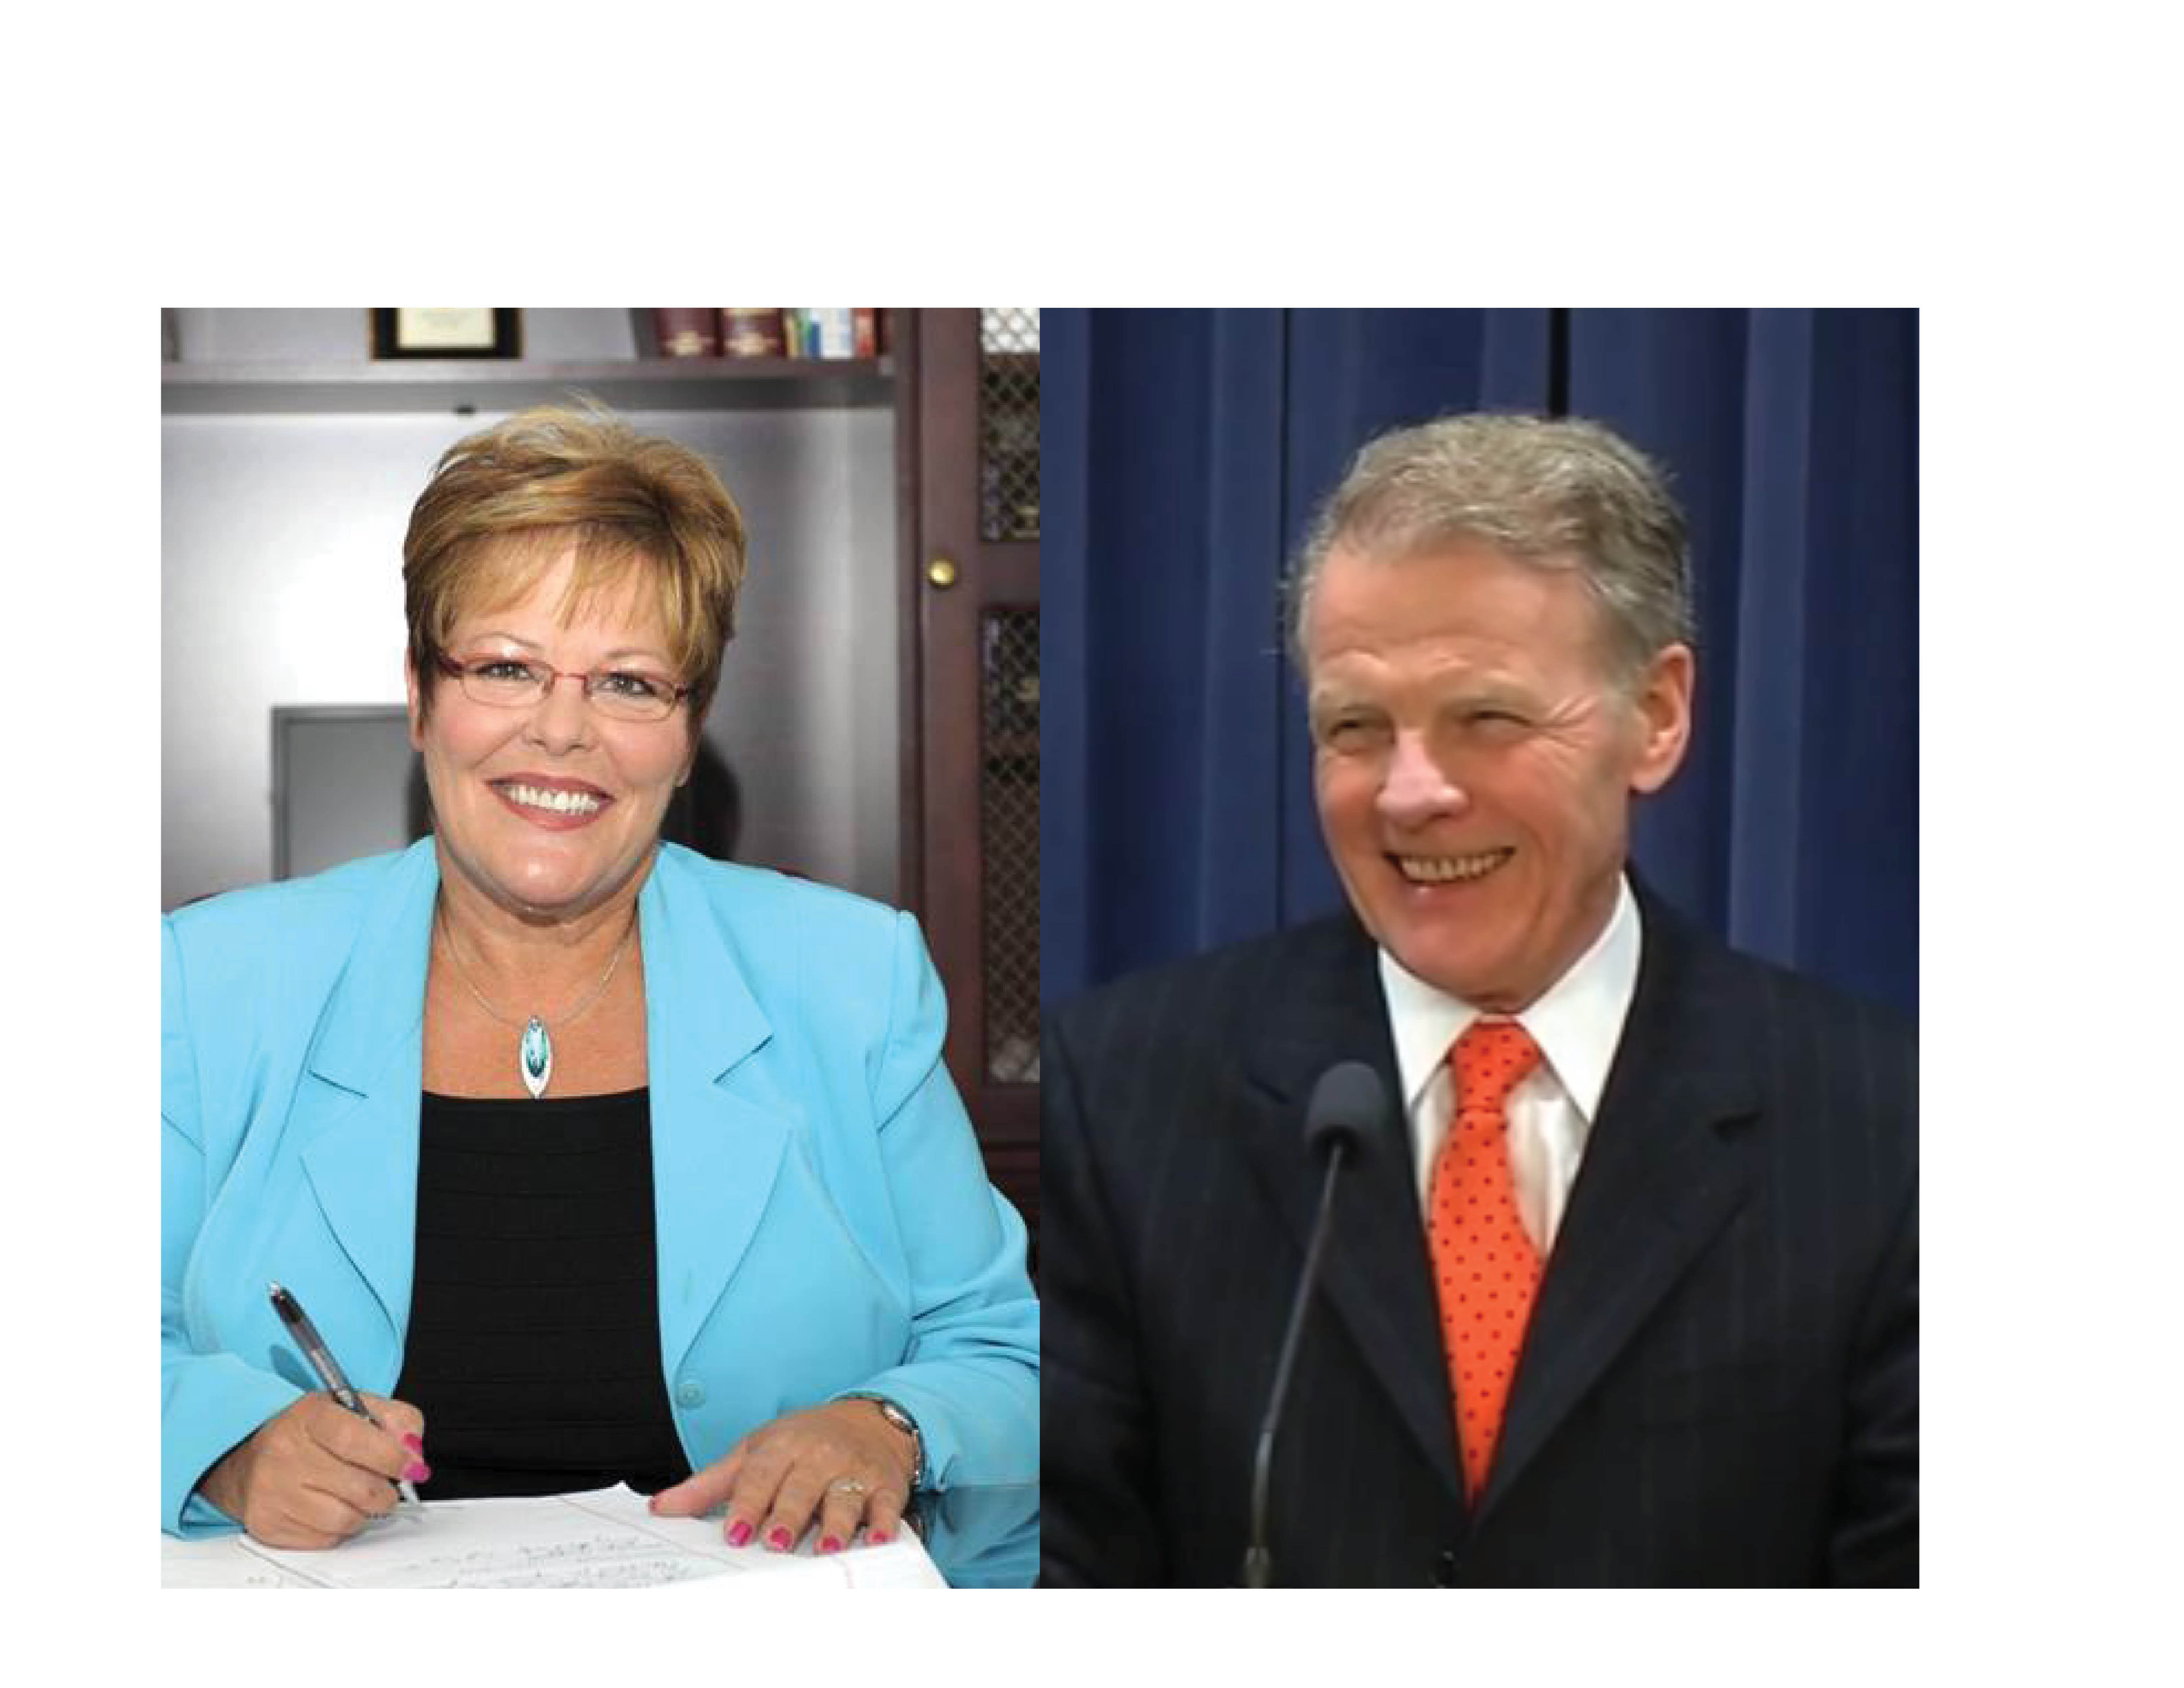 Lisa Dugan (left) and Michael J. Madigan (D-Chicago) (Right).